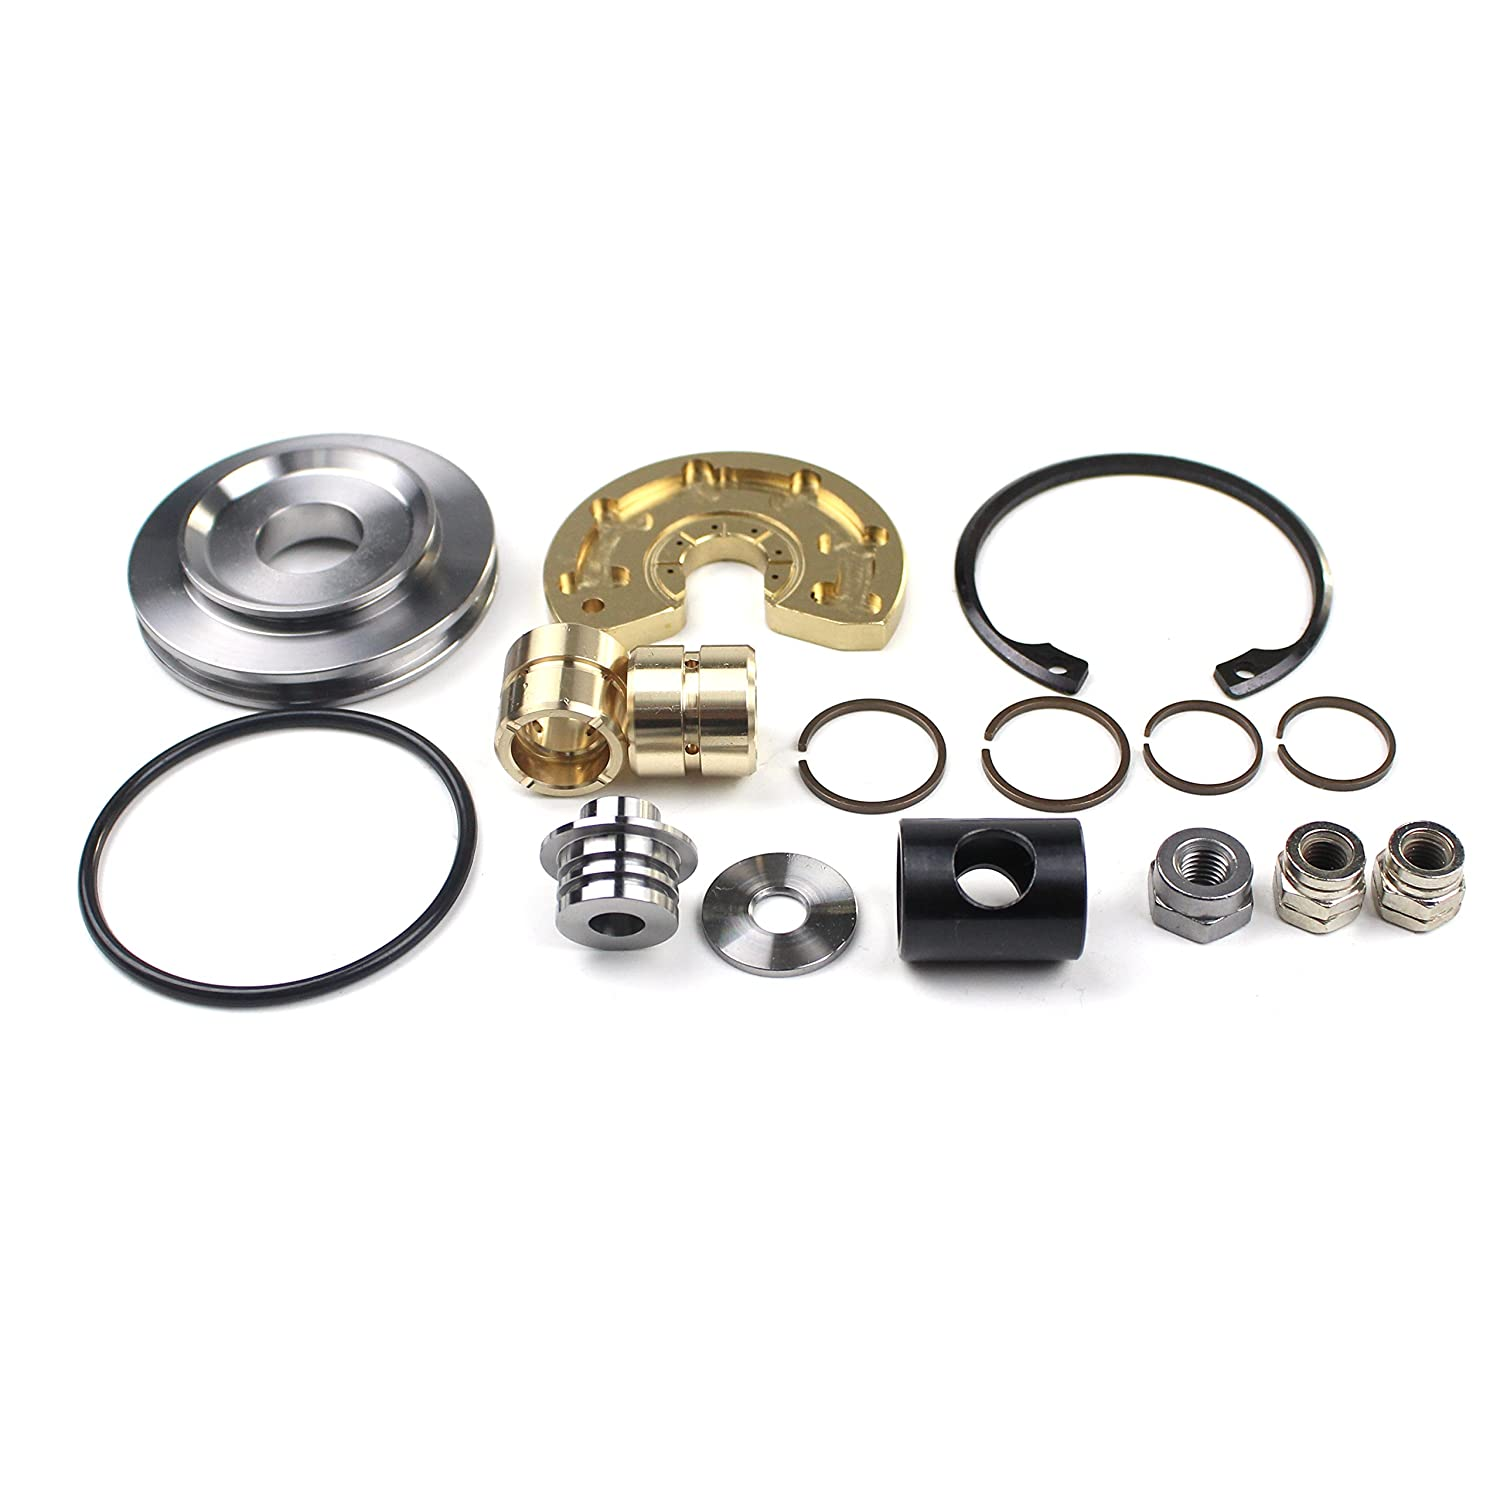 SUPERCELL 08-10 Powerstroke 6.4L Compound Turbo High Pressure Side Repair Kit Supercell Turbos